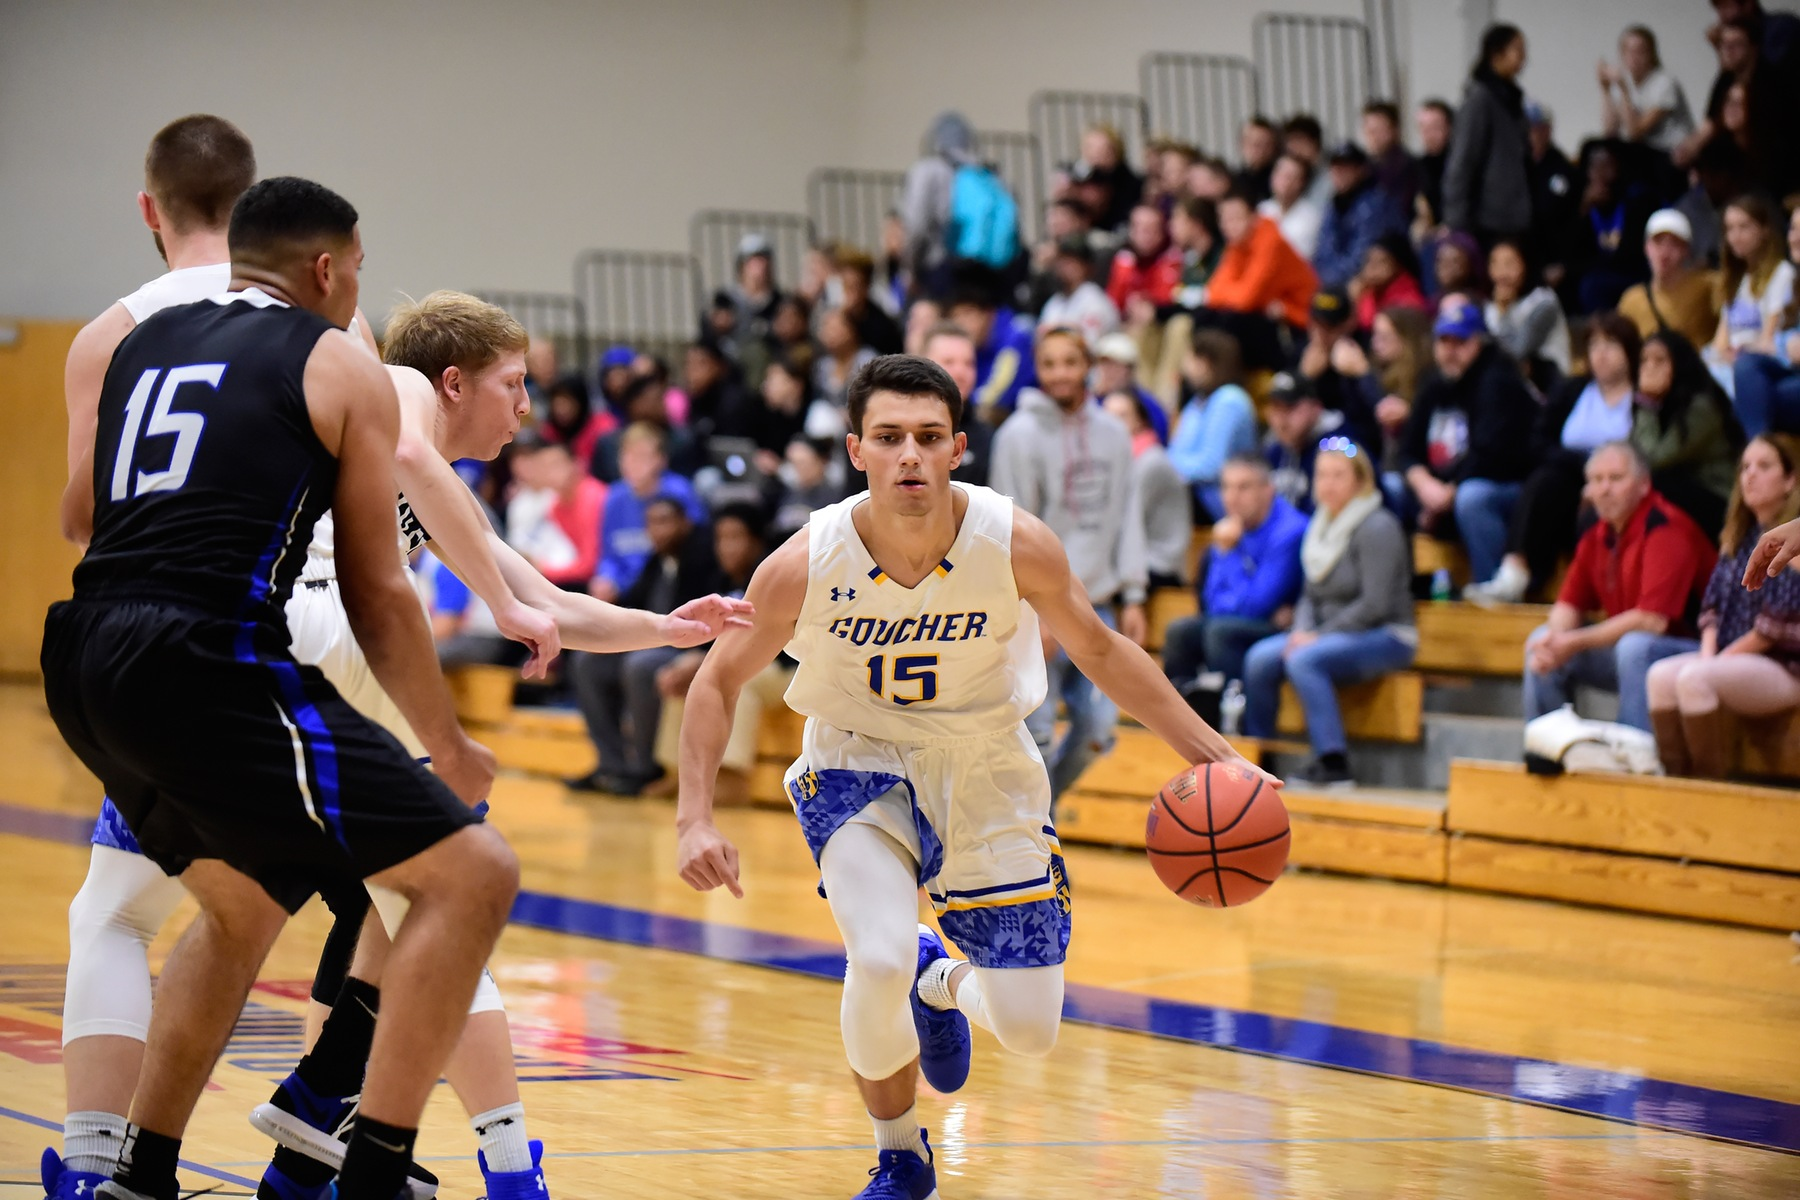 Men's Basketball Defeated By Scranton in Landmark Conference Opener, 85-66